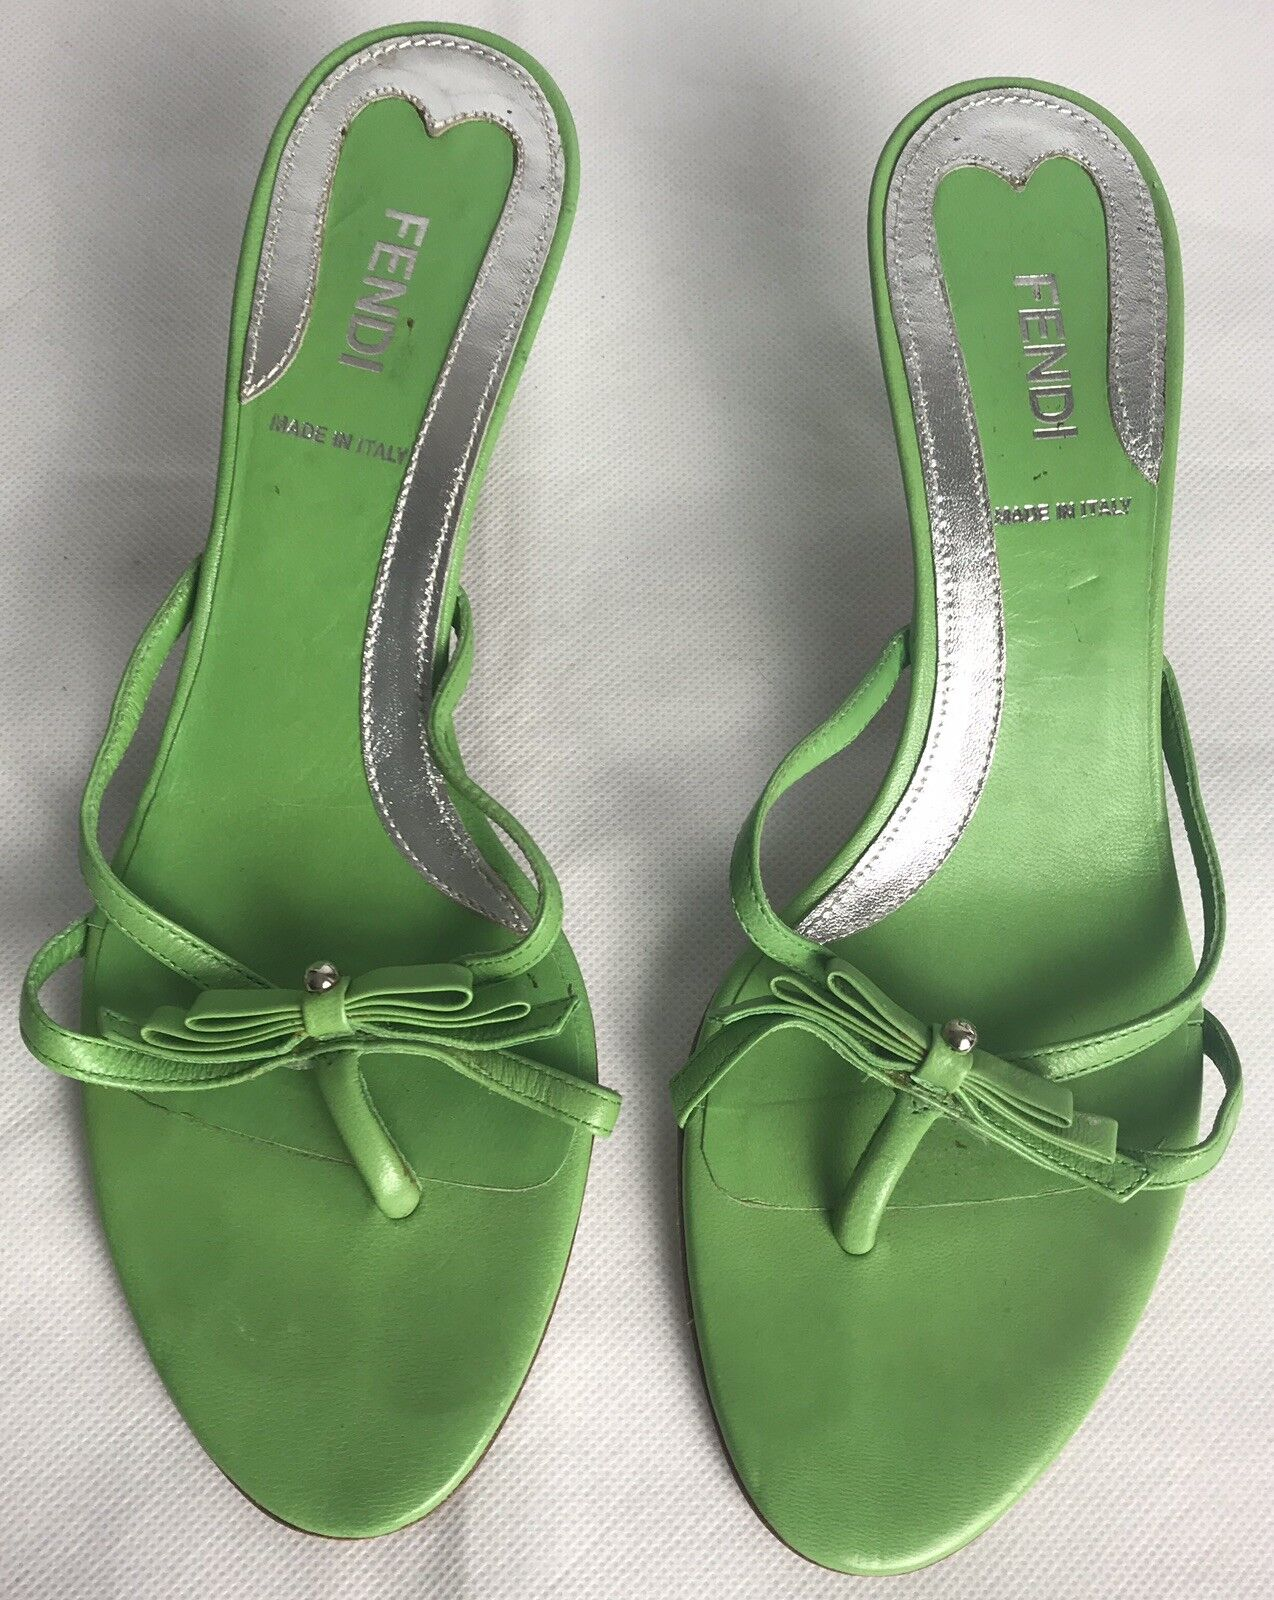 FENDI Flats Sandals Good Condition